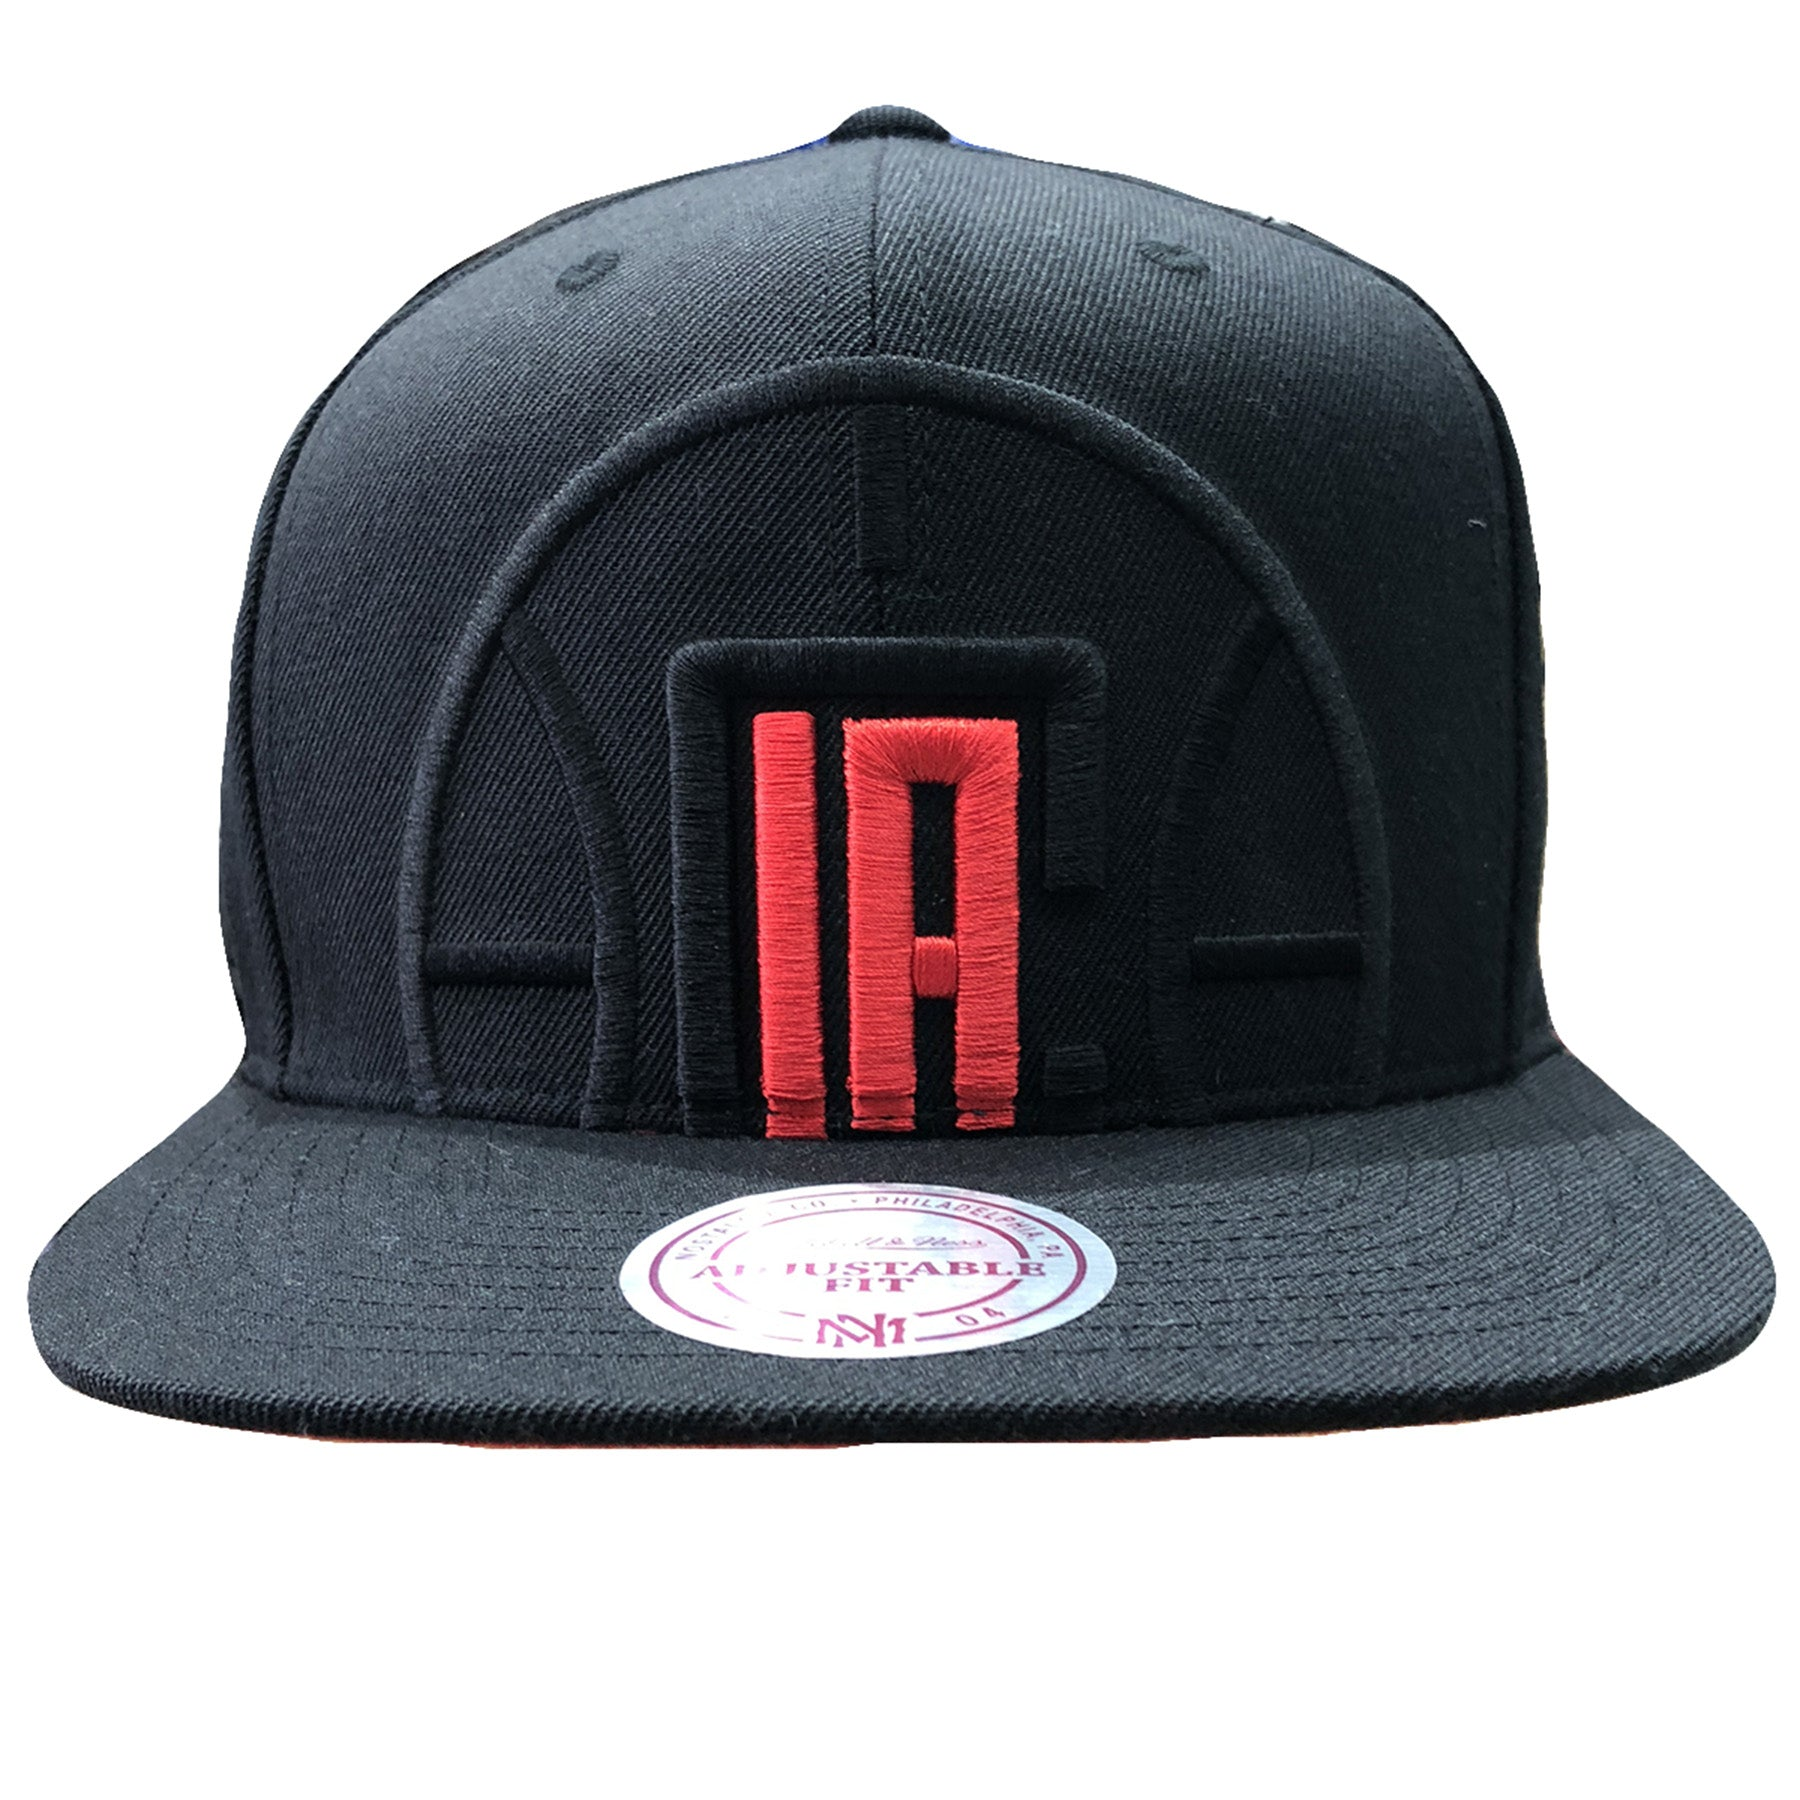 hot sale online 93ceb 22b73 Embroidered on the front of the Los Angeles Clippers XL Logo snapback hat  is the Los